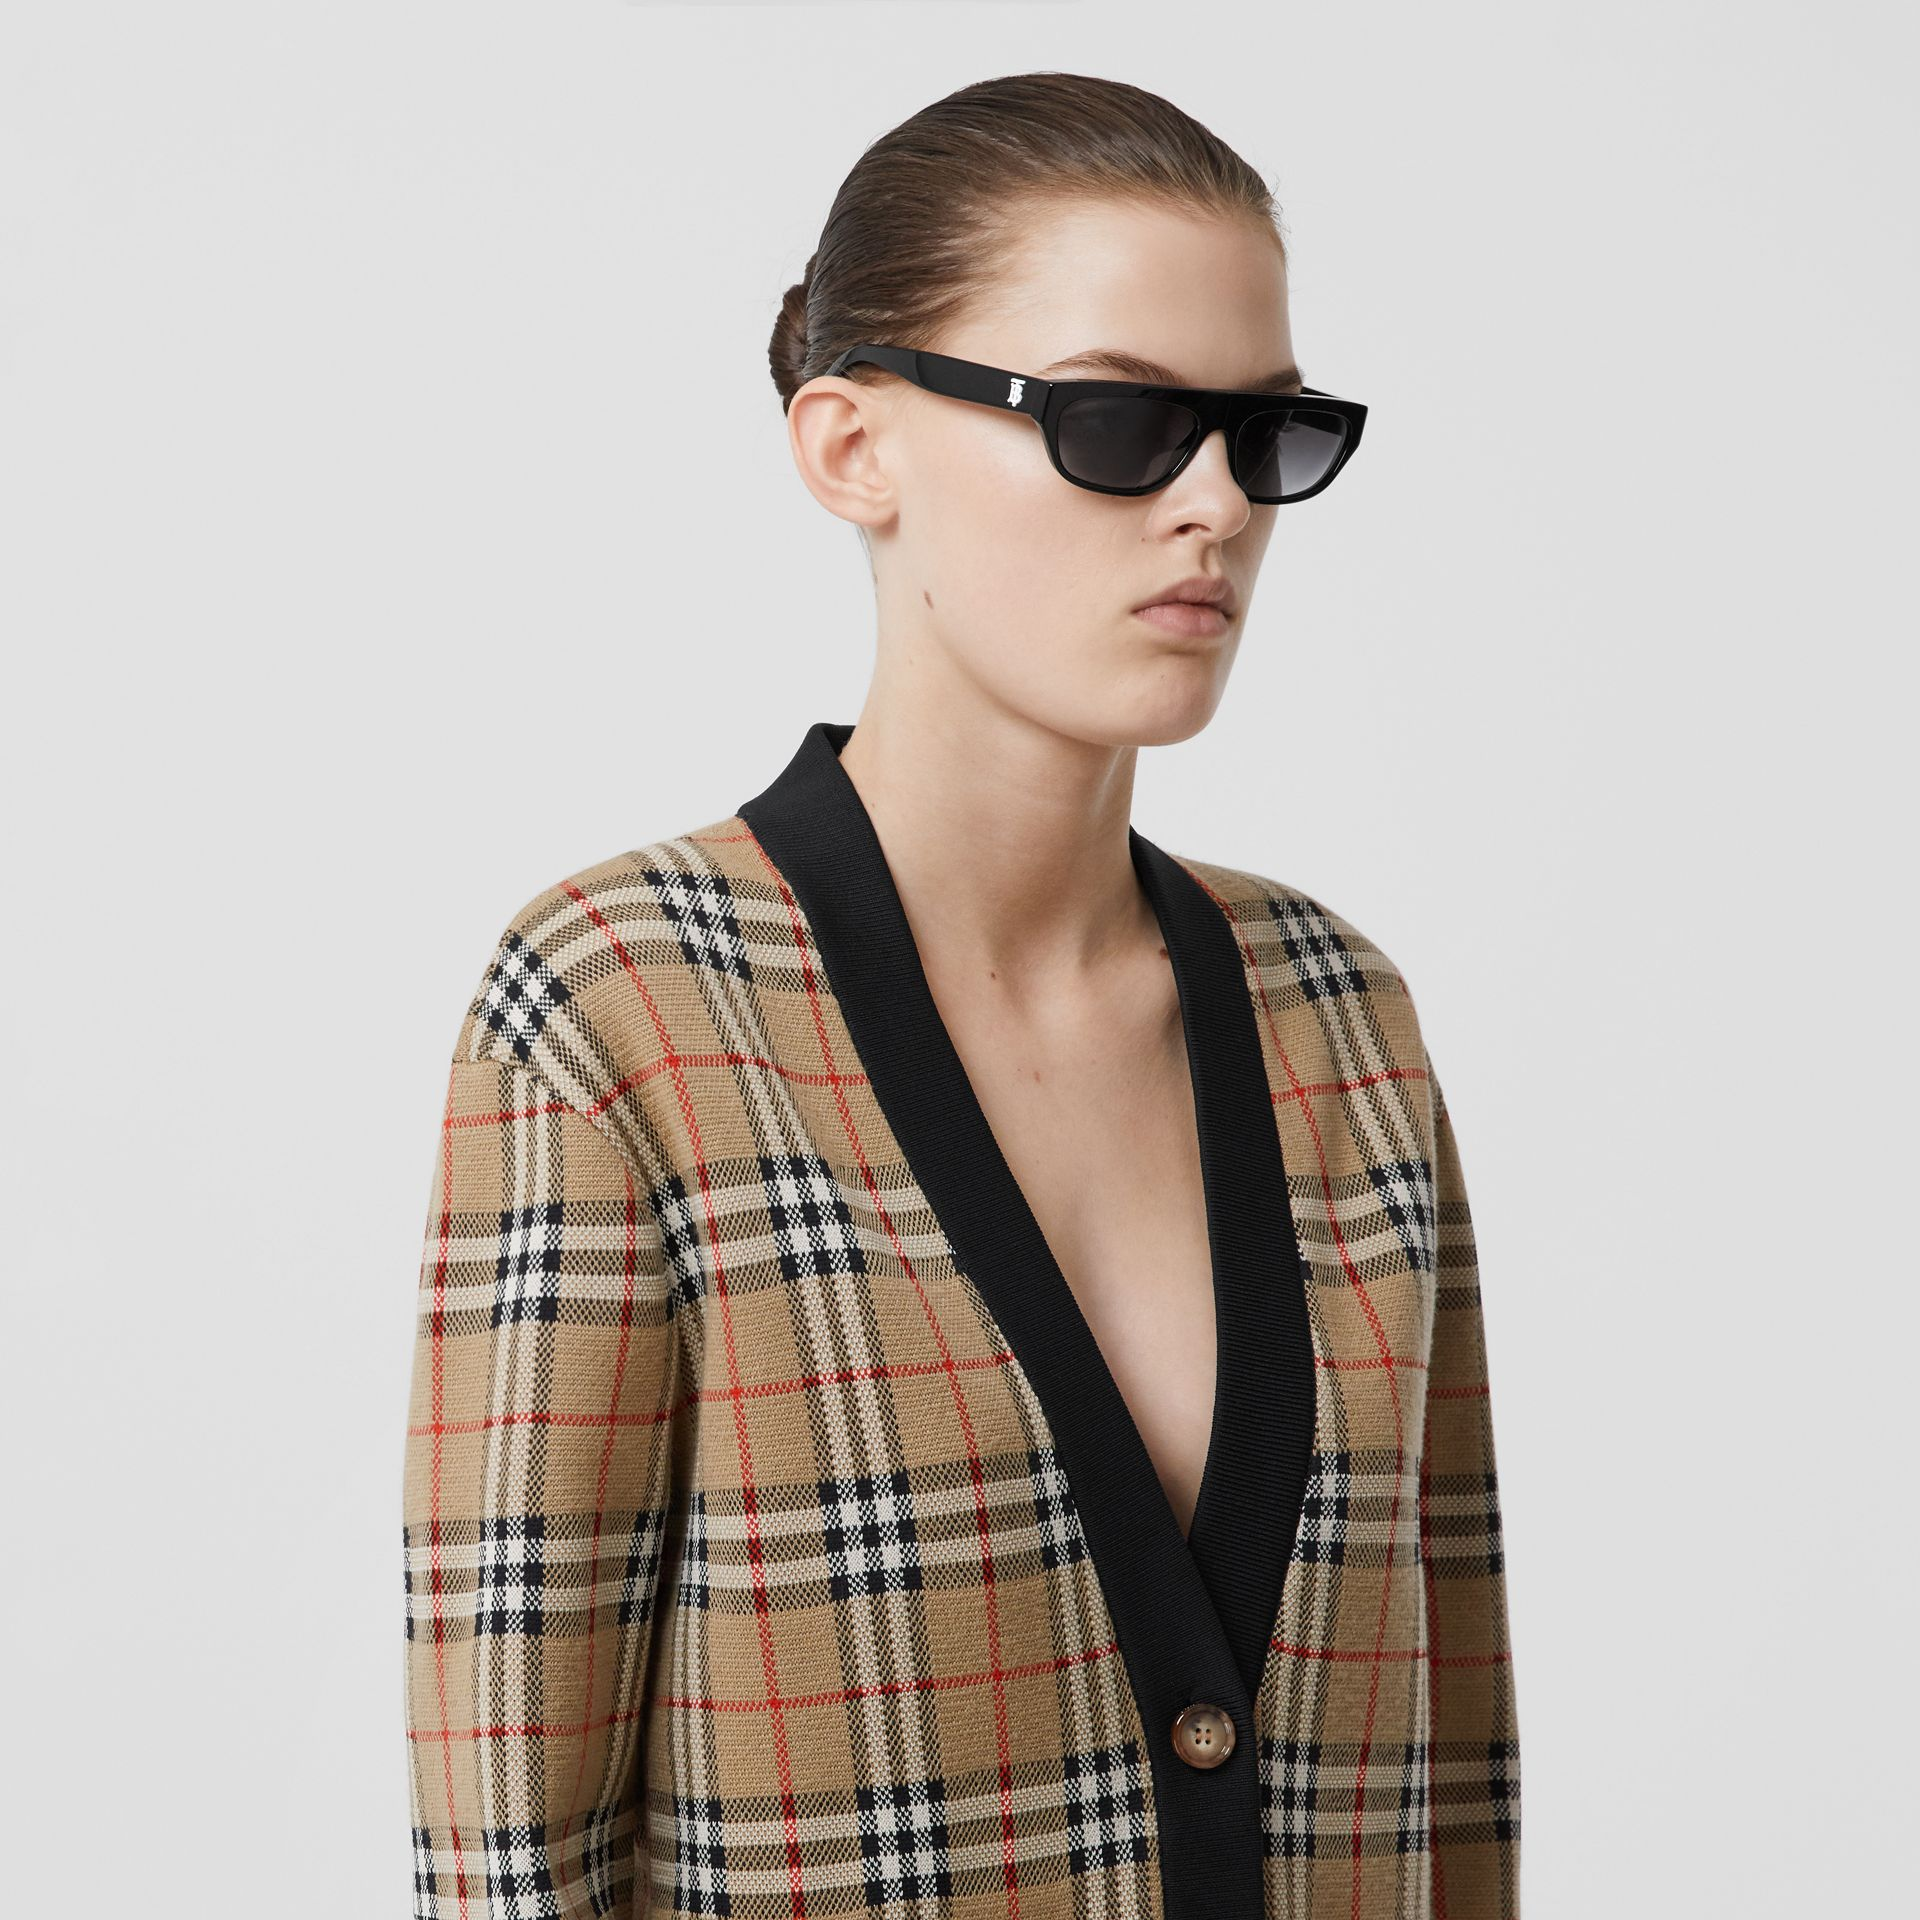 Vintage Check Merino Wool Blend Jacquard Cardigan in Archive Beige - Women | Burberry - gallery image 1